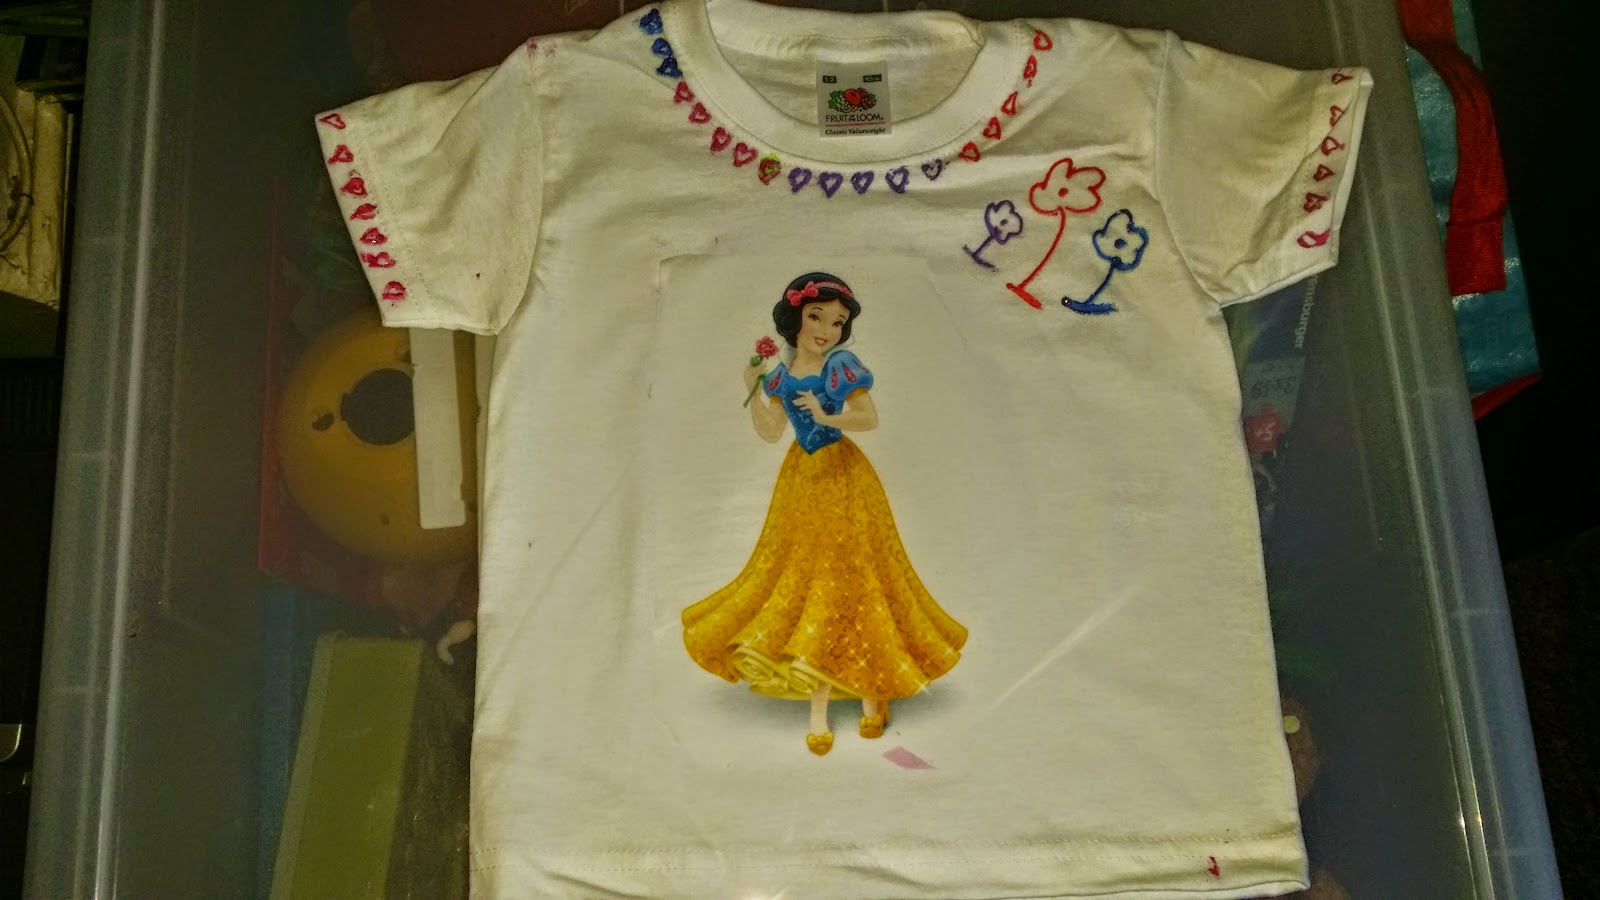 Ready to wear Designed T-shirt